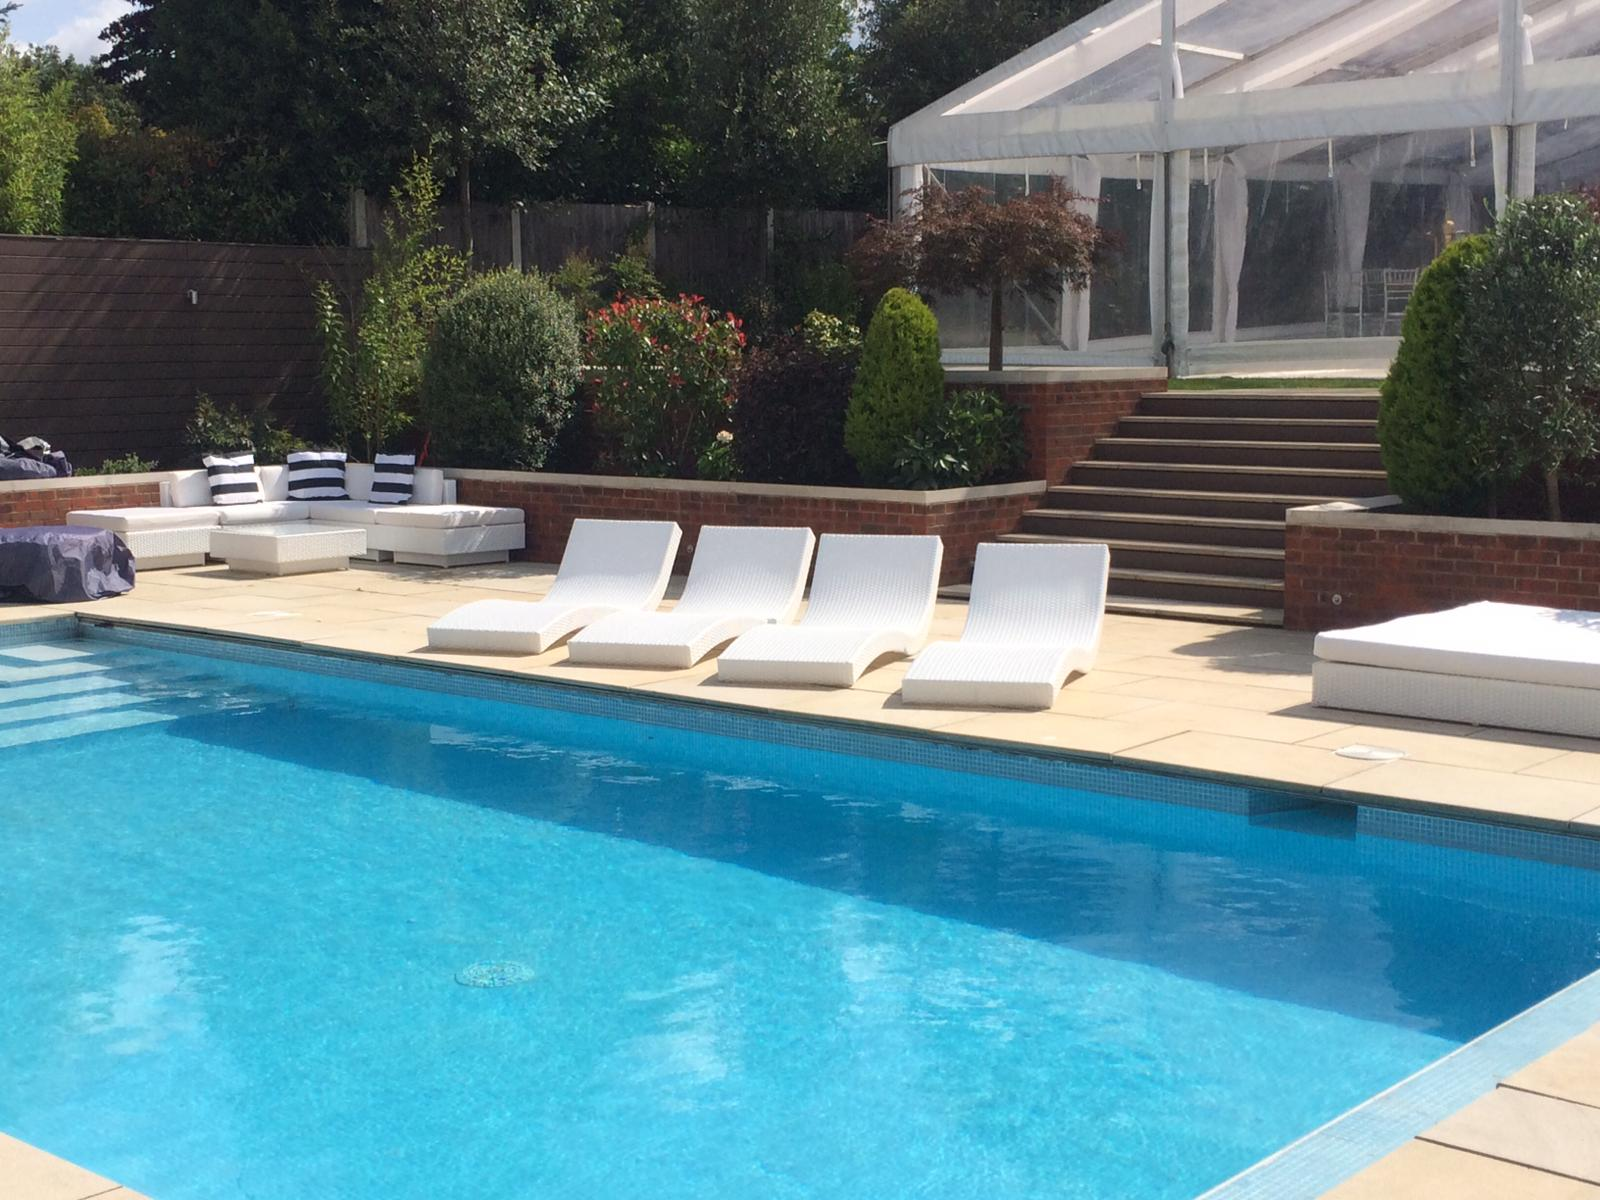 Sun lounger hire at pool party